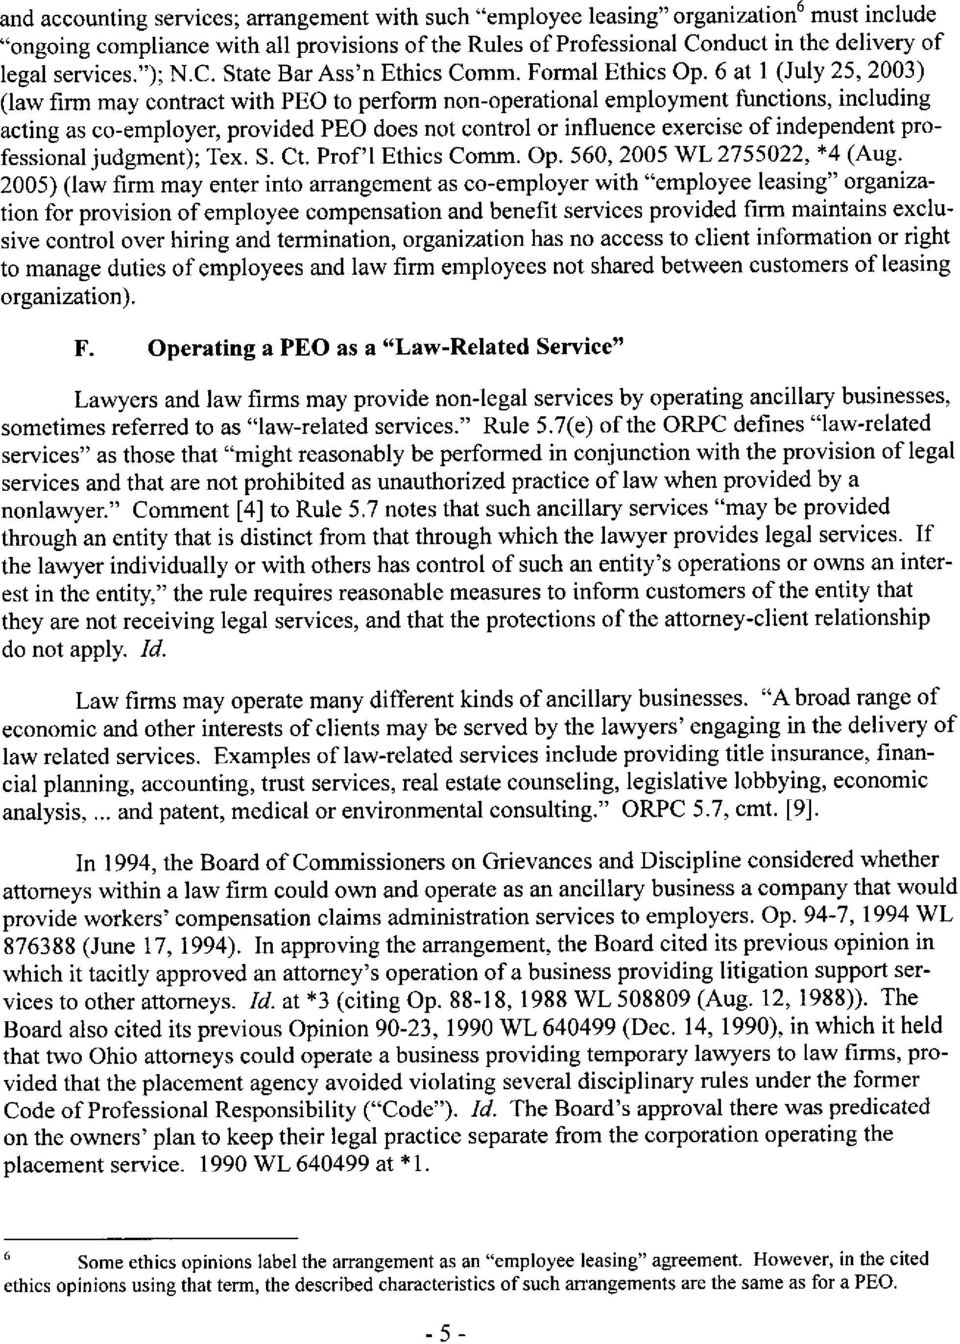 6 at 1 (July 25, 2003) (law firm may contract with PEO to perform non-operational employment functions, including acting as co-employer, provided PEO does not control or influence exercise of